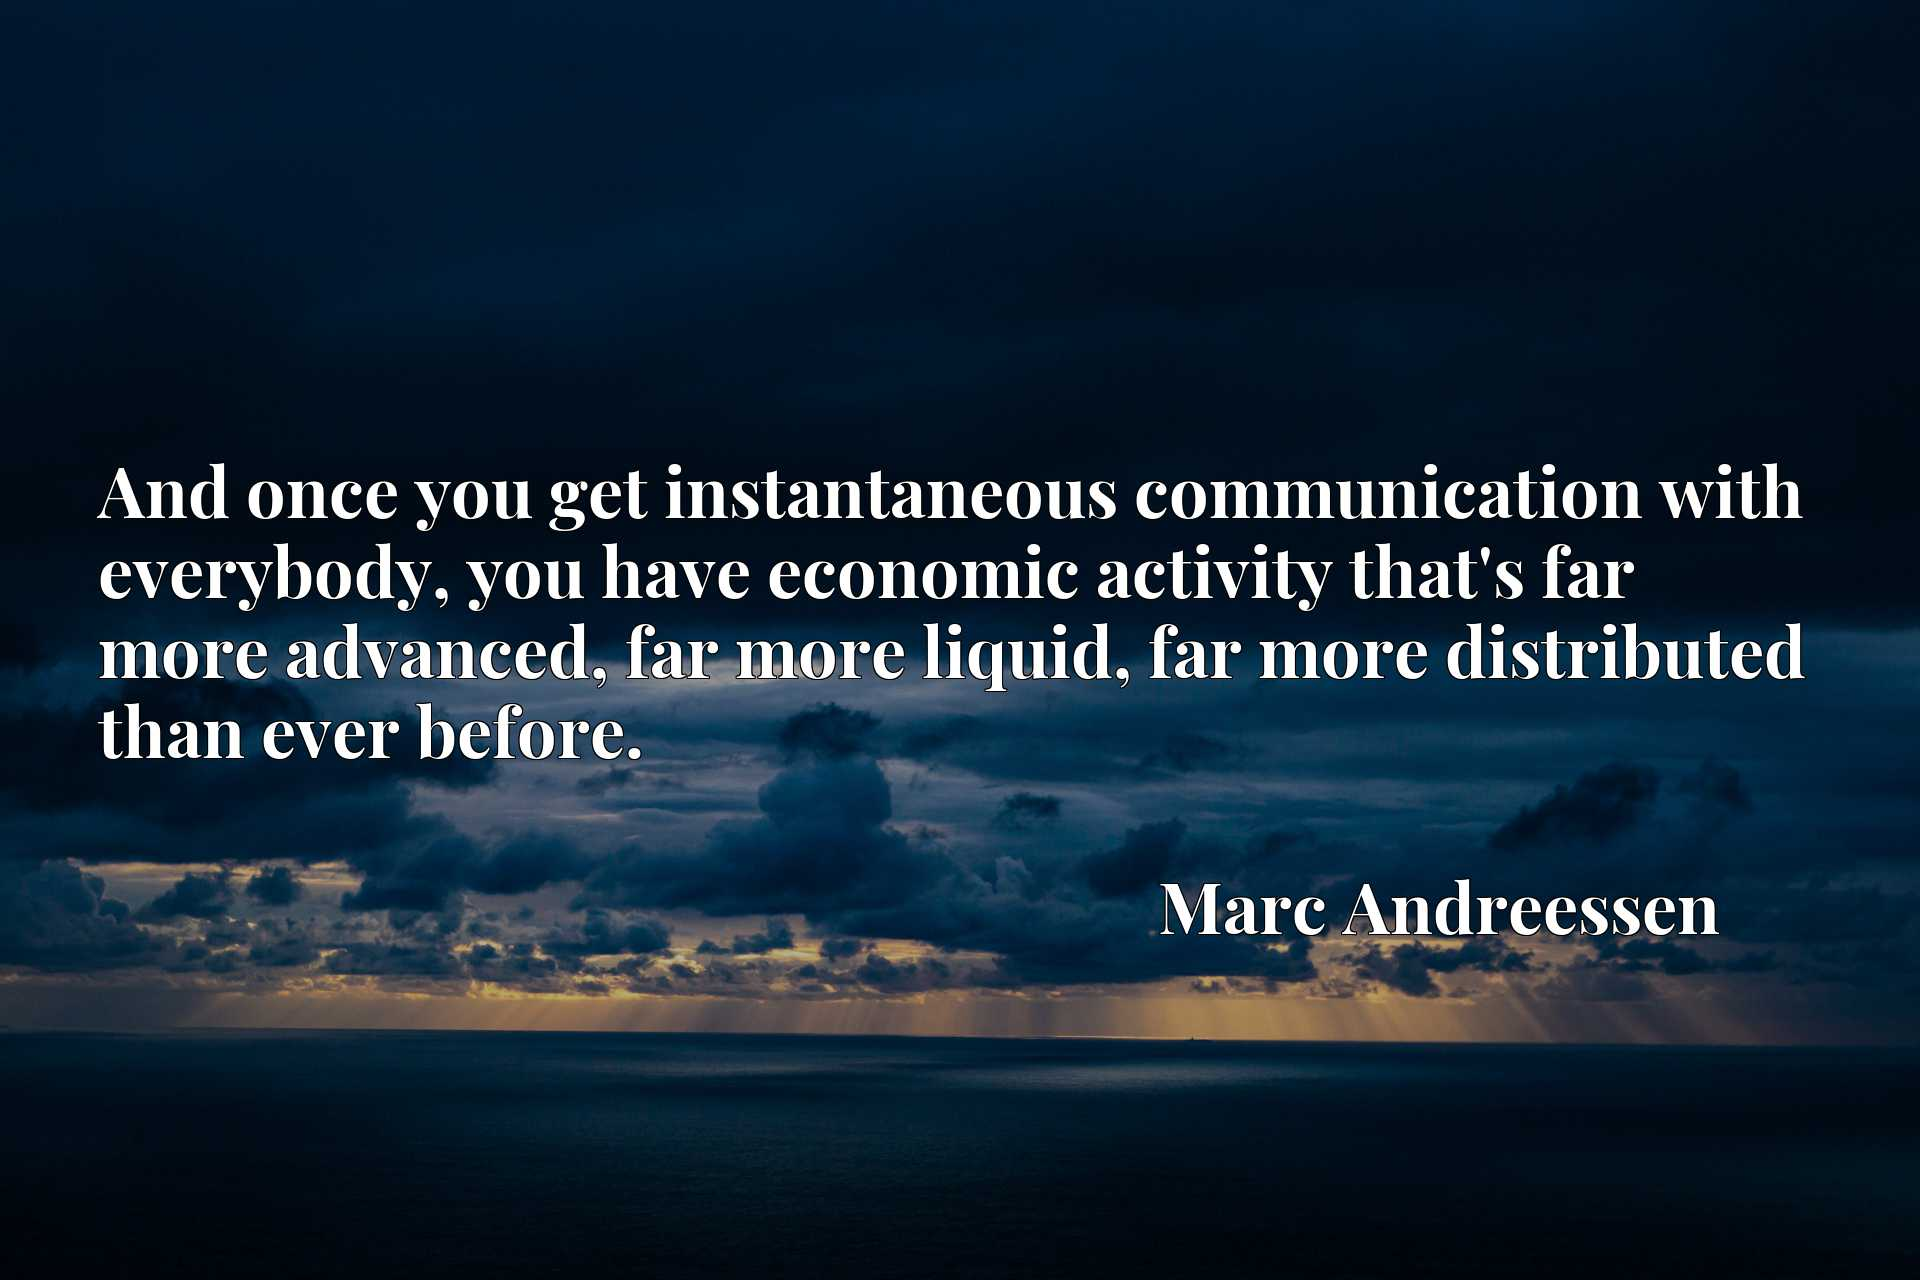 And once you get instantaneous communication with everybody, you have economic activity that's far more advanced, far more liquid, far more distributed than ever before.